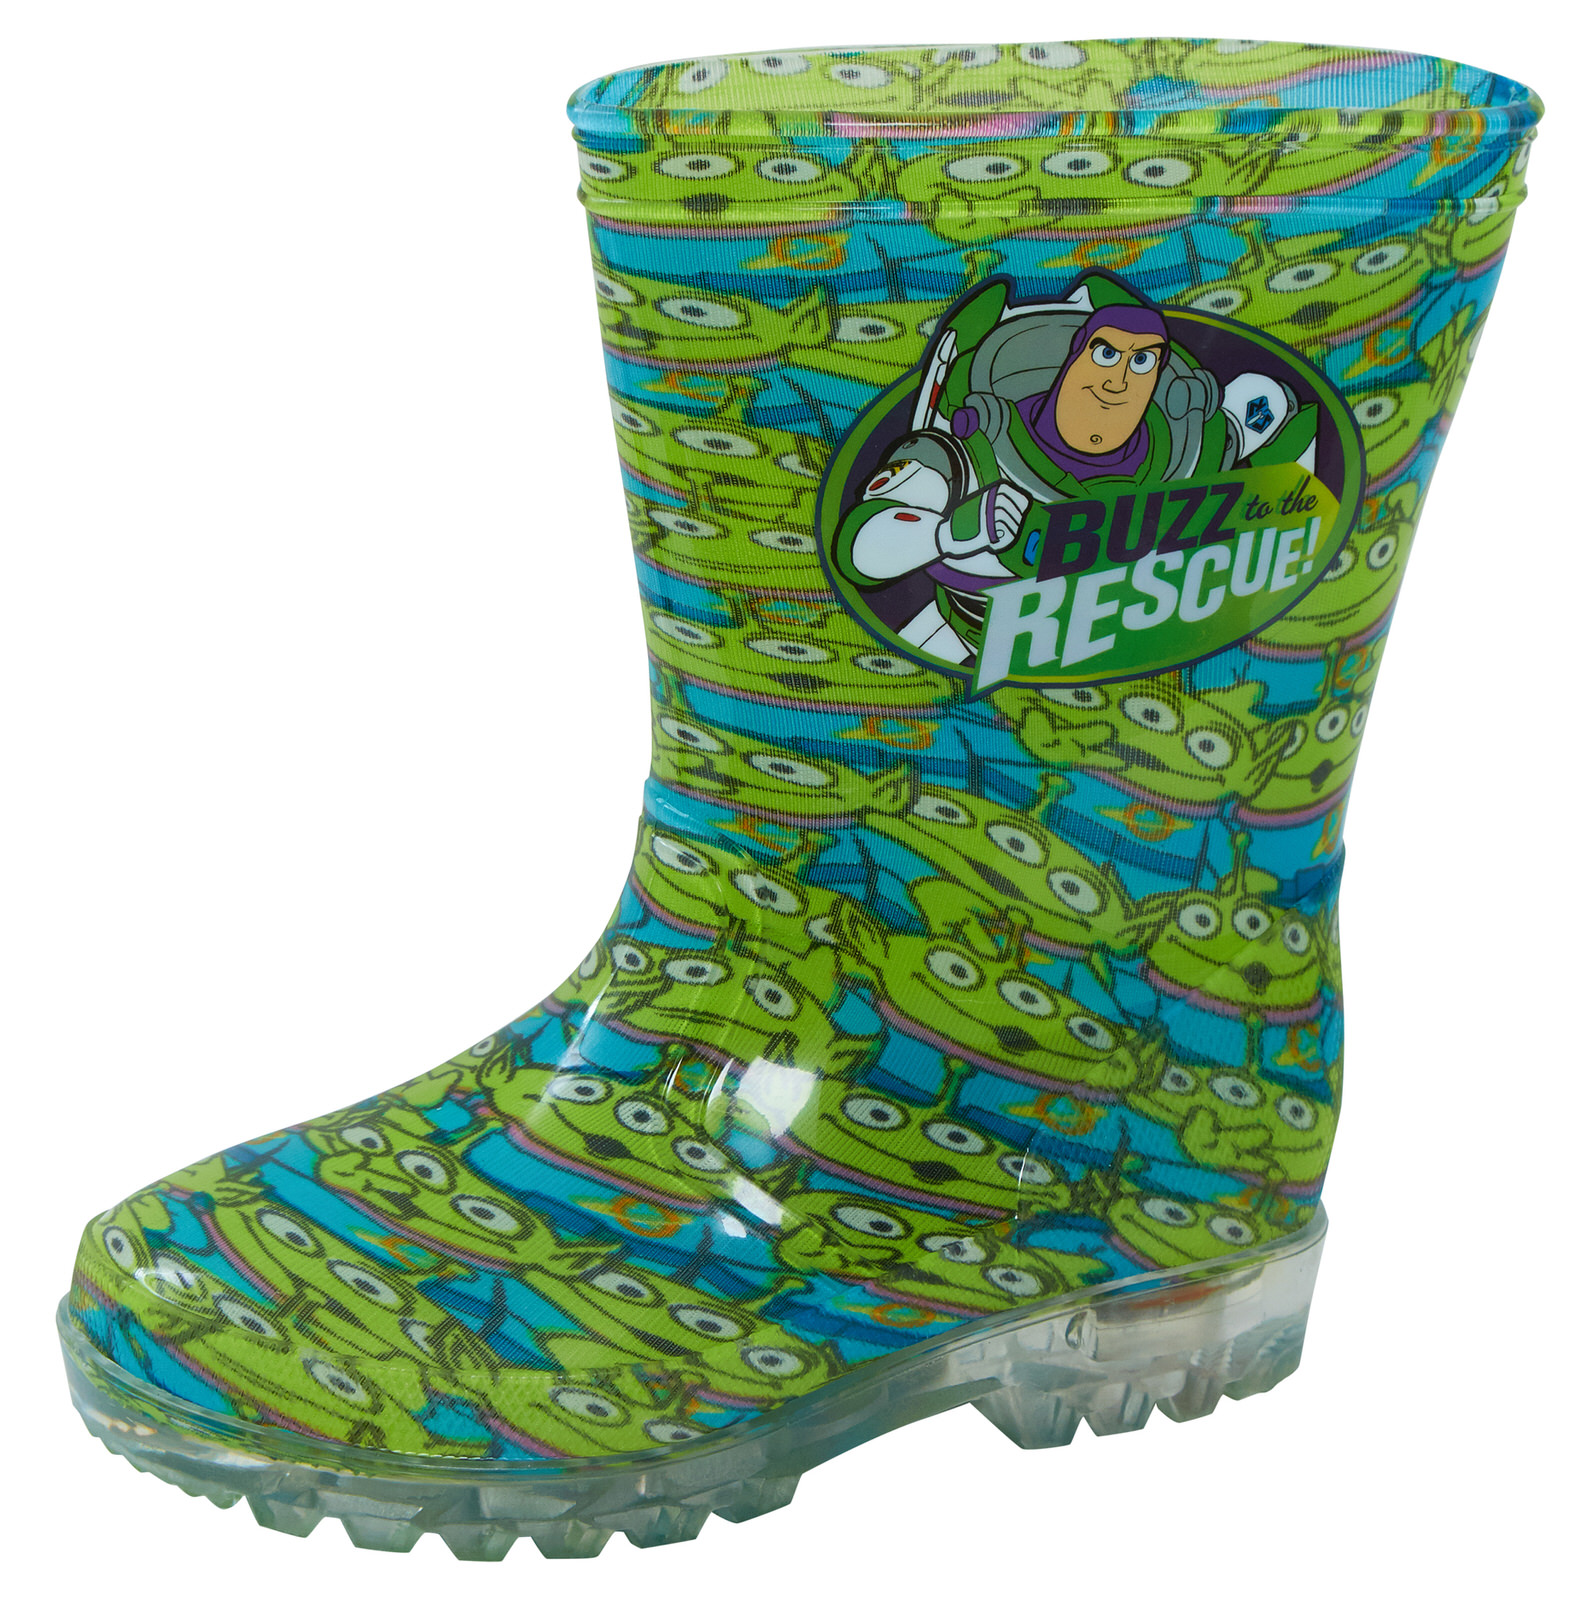 waterproof wellingtons with fun design Childrens Boots